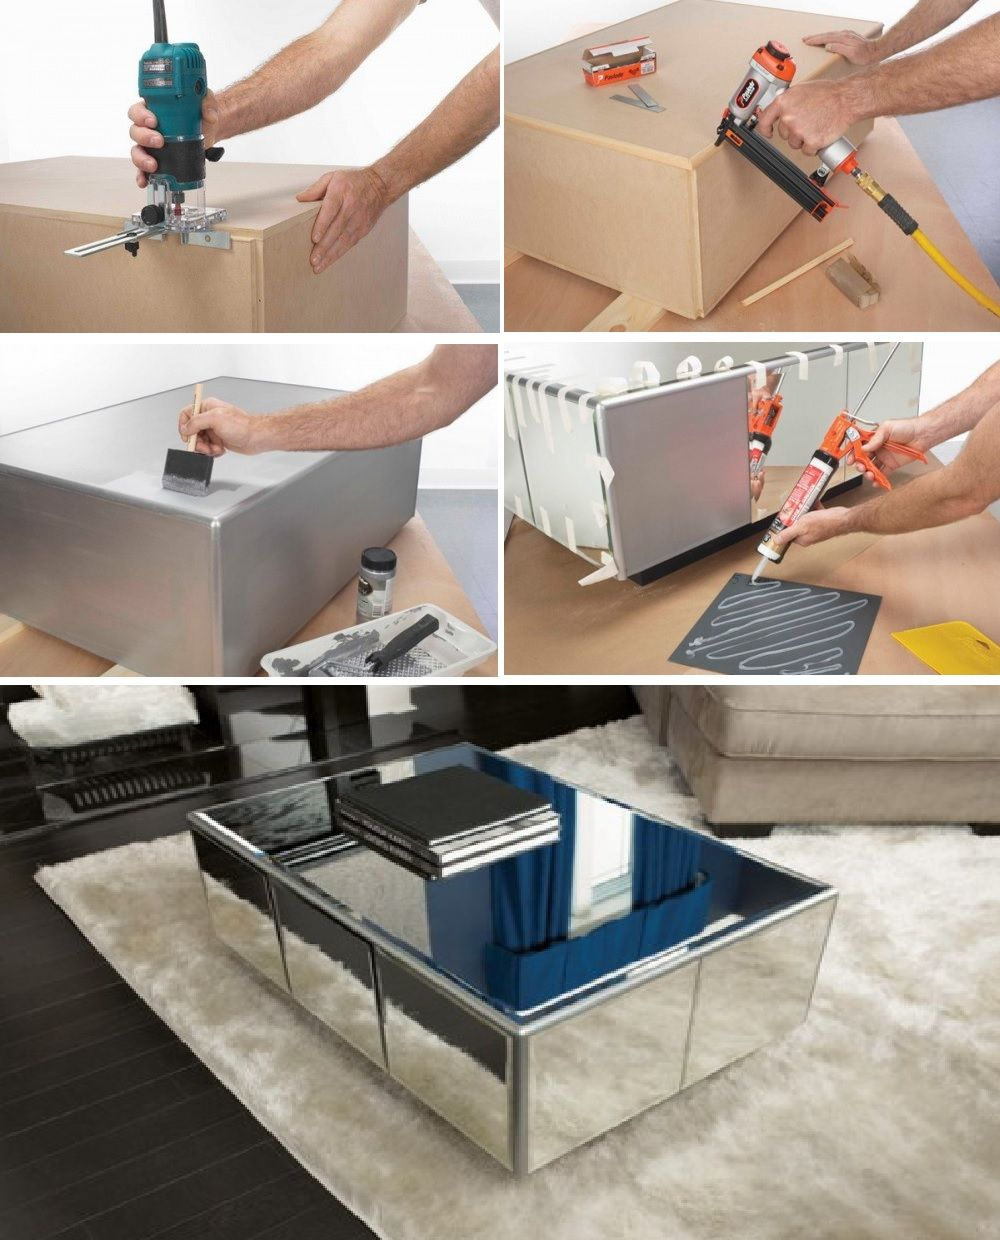 diy mirrored furniture mirror nightstand how to build mirrored coffee table diy mirror coffee table decor pinterest diy and home